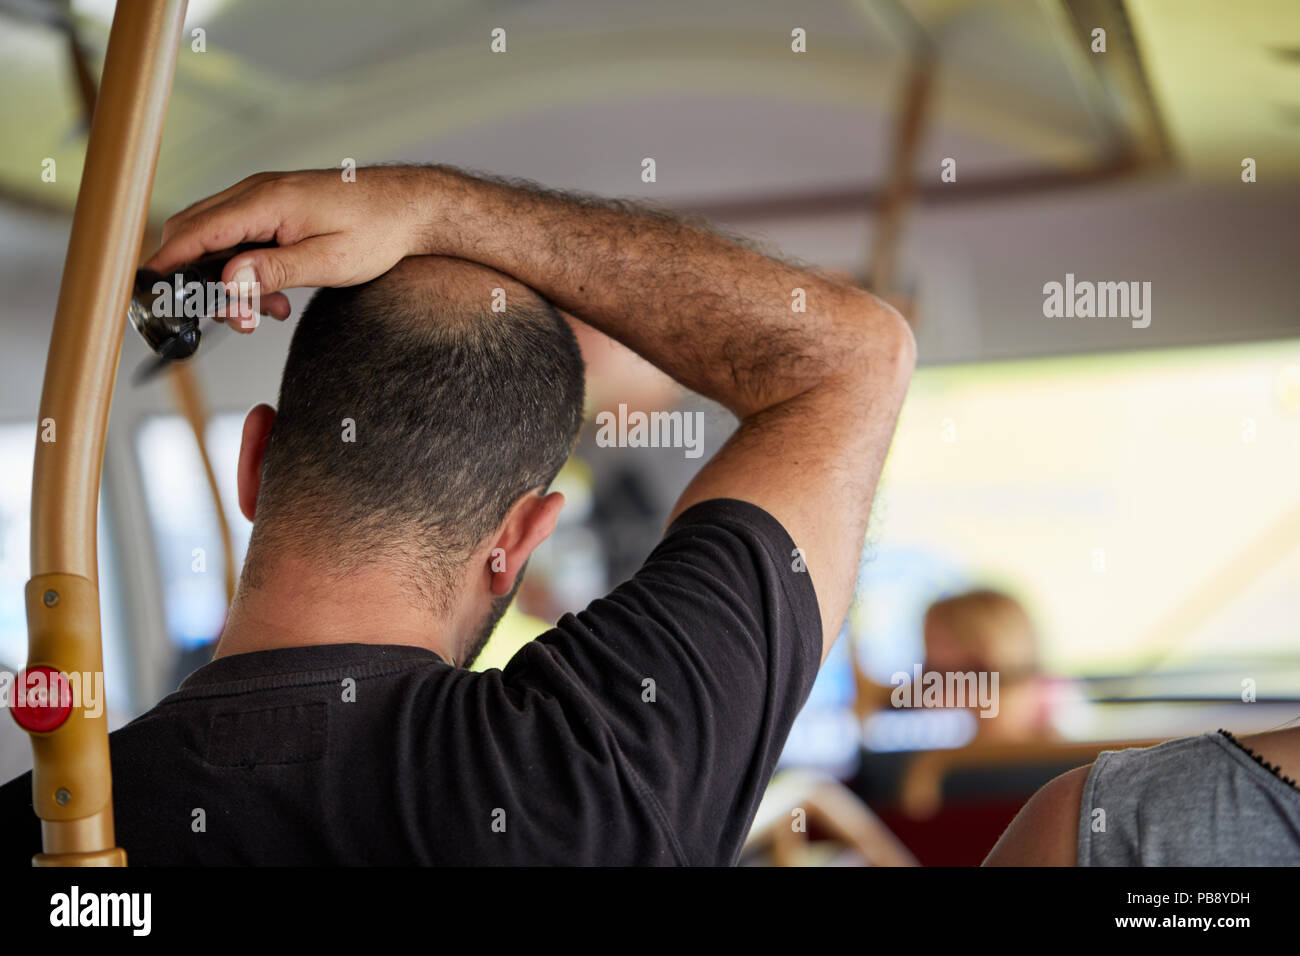 London, UK. 27th July 2018. UK Weather: A passenger on a stifling hot London bus attempting to stay cool on the hottest day of the year. Credit: Kevin Frost/Alamy Live News - Stock Image